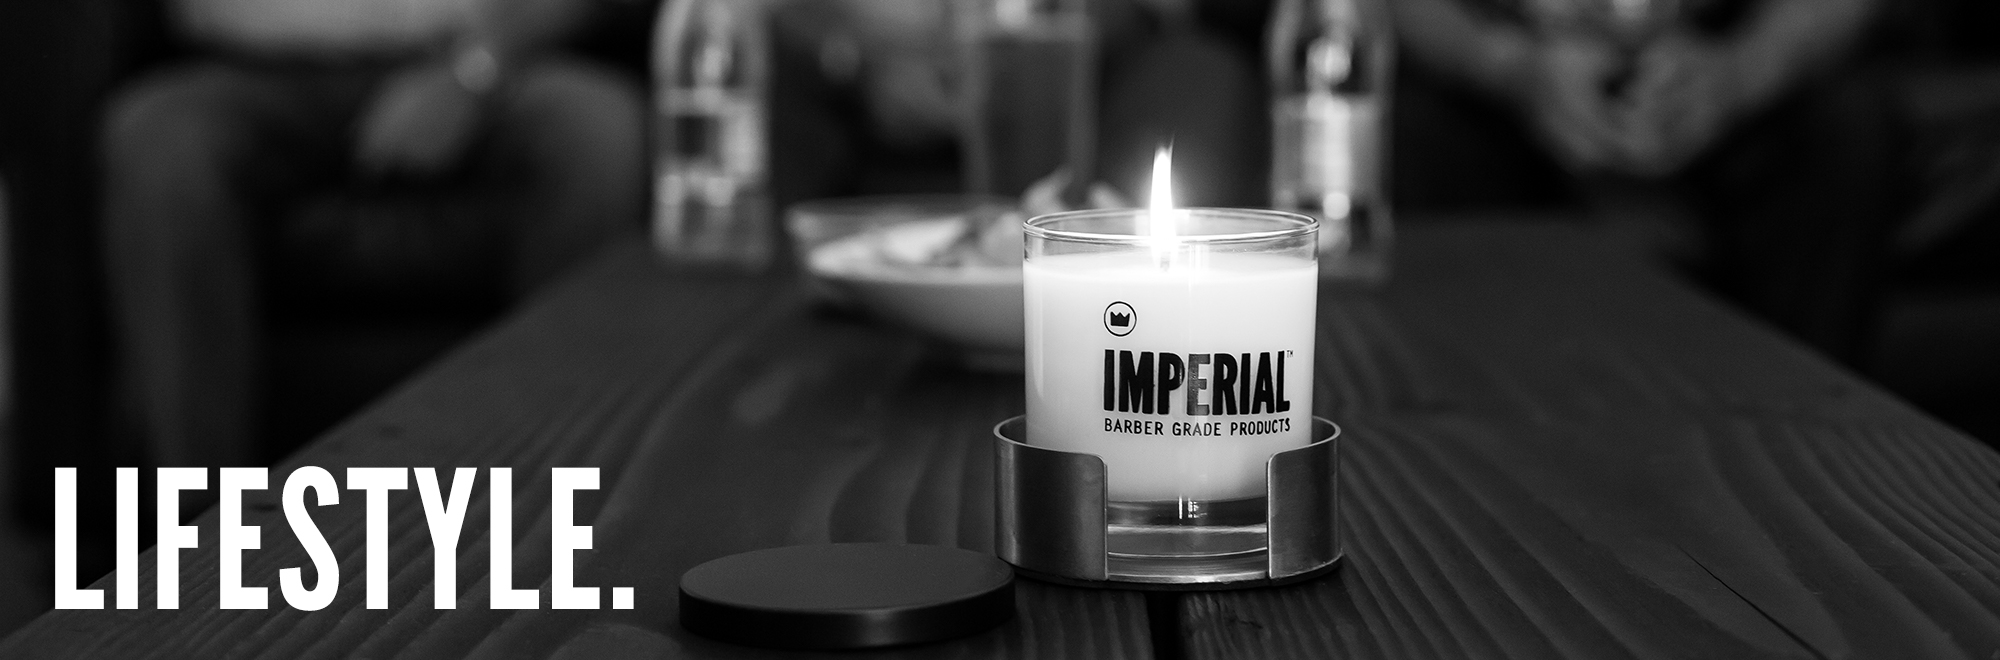 Lifestyle - Imperial Barber Products